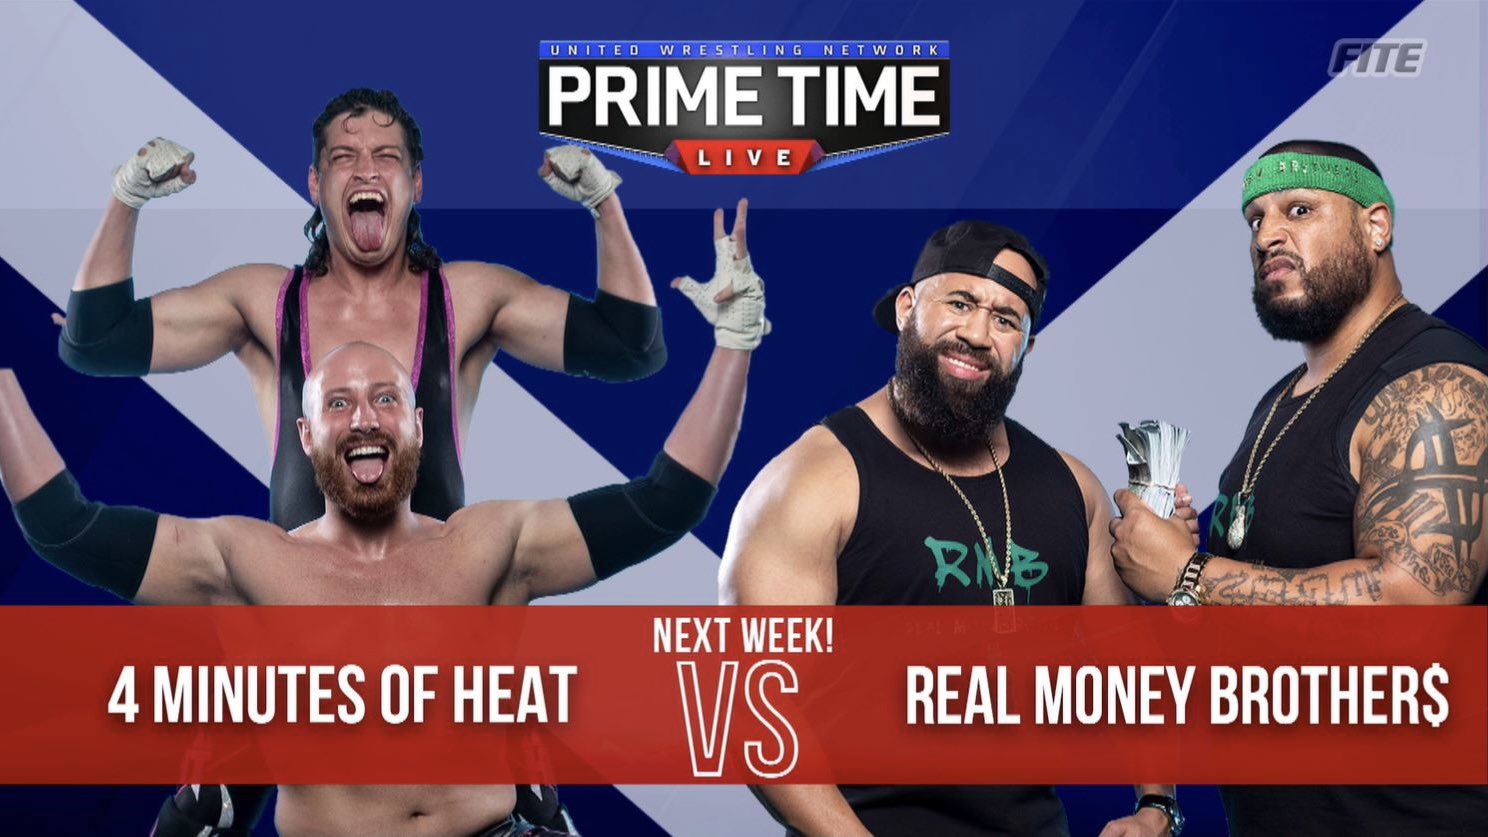 4 Minutes Of Heat vs Real Money Brothers UWN NWA